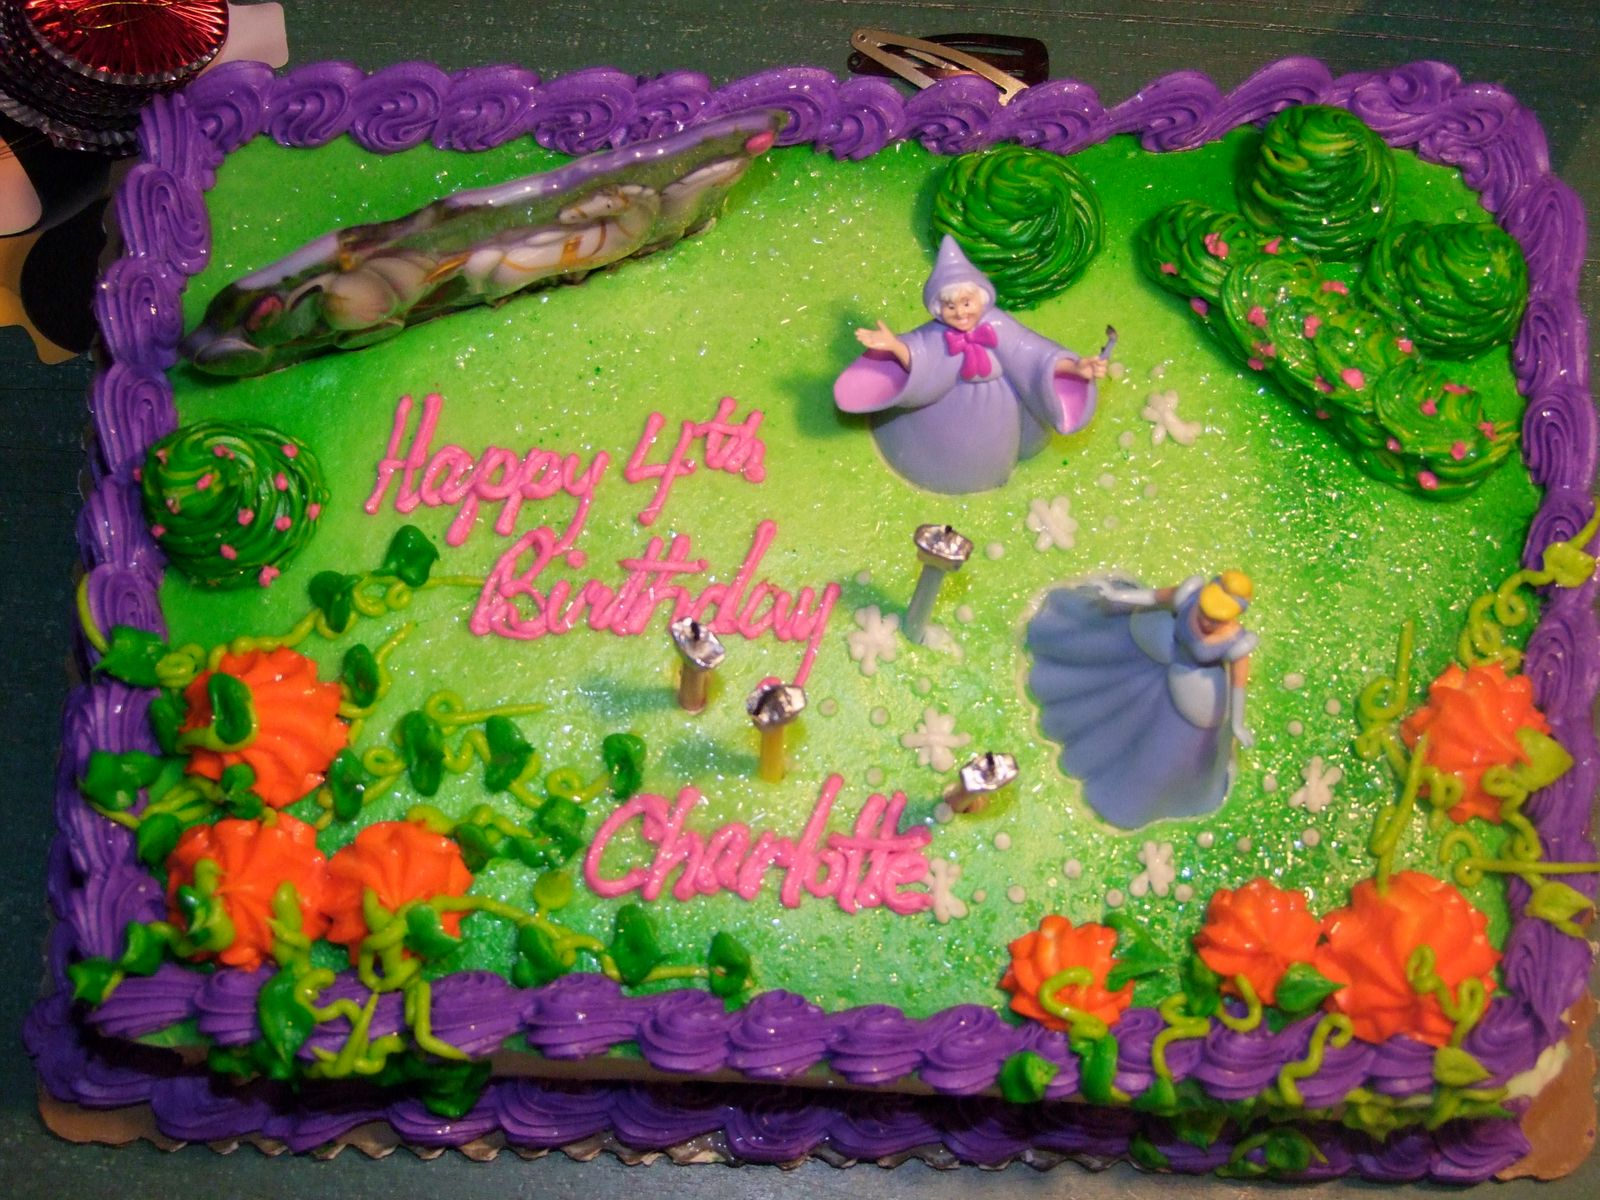 I Have To Say That Was Very Happy With The Job Publix Did On This Cake It Cute And Tasted Fantastic Got Smallest One They Would